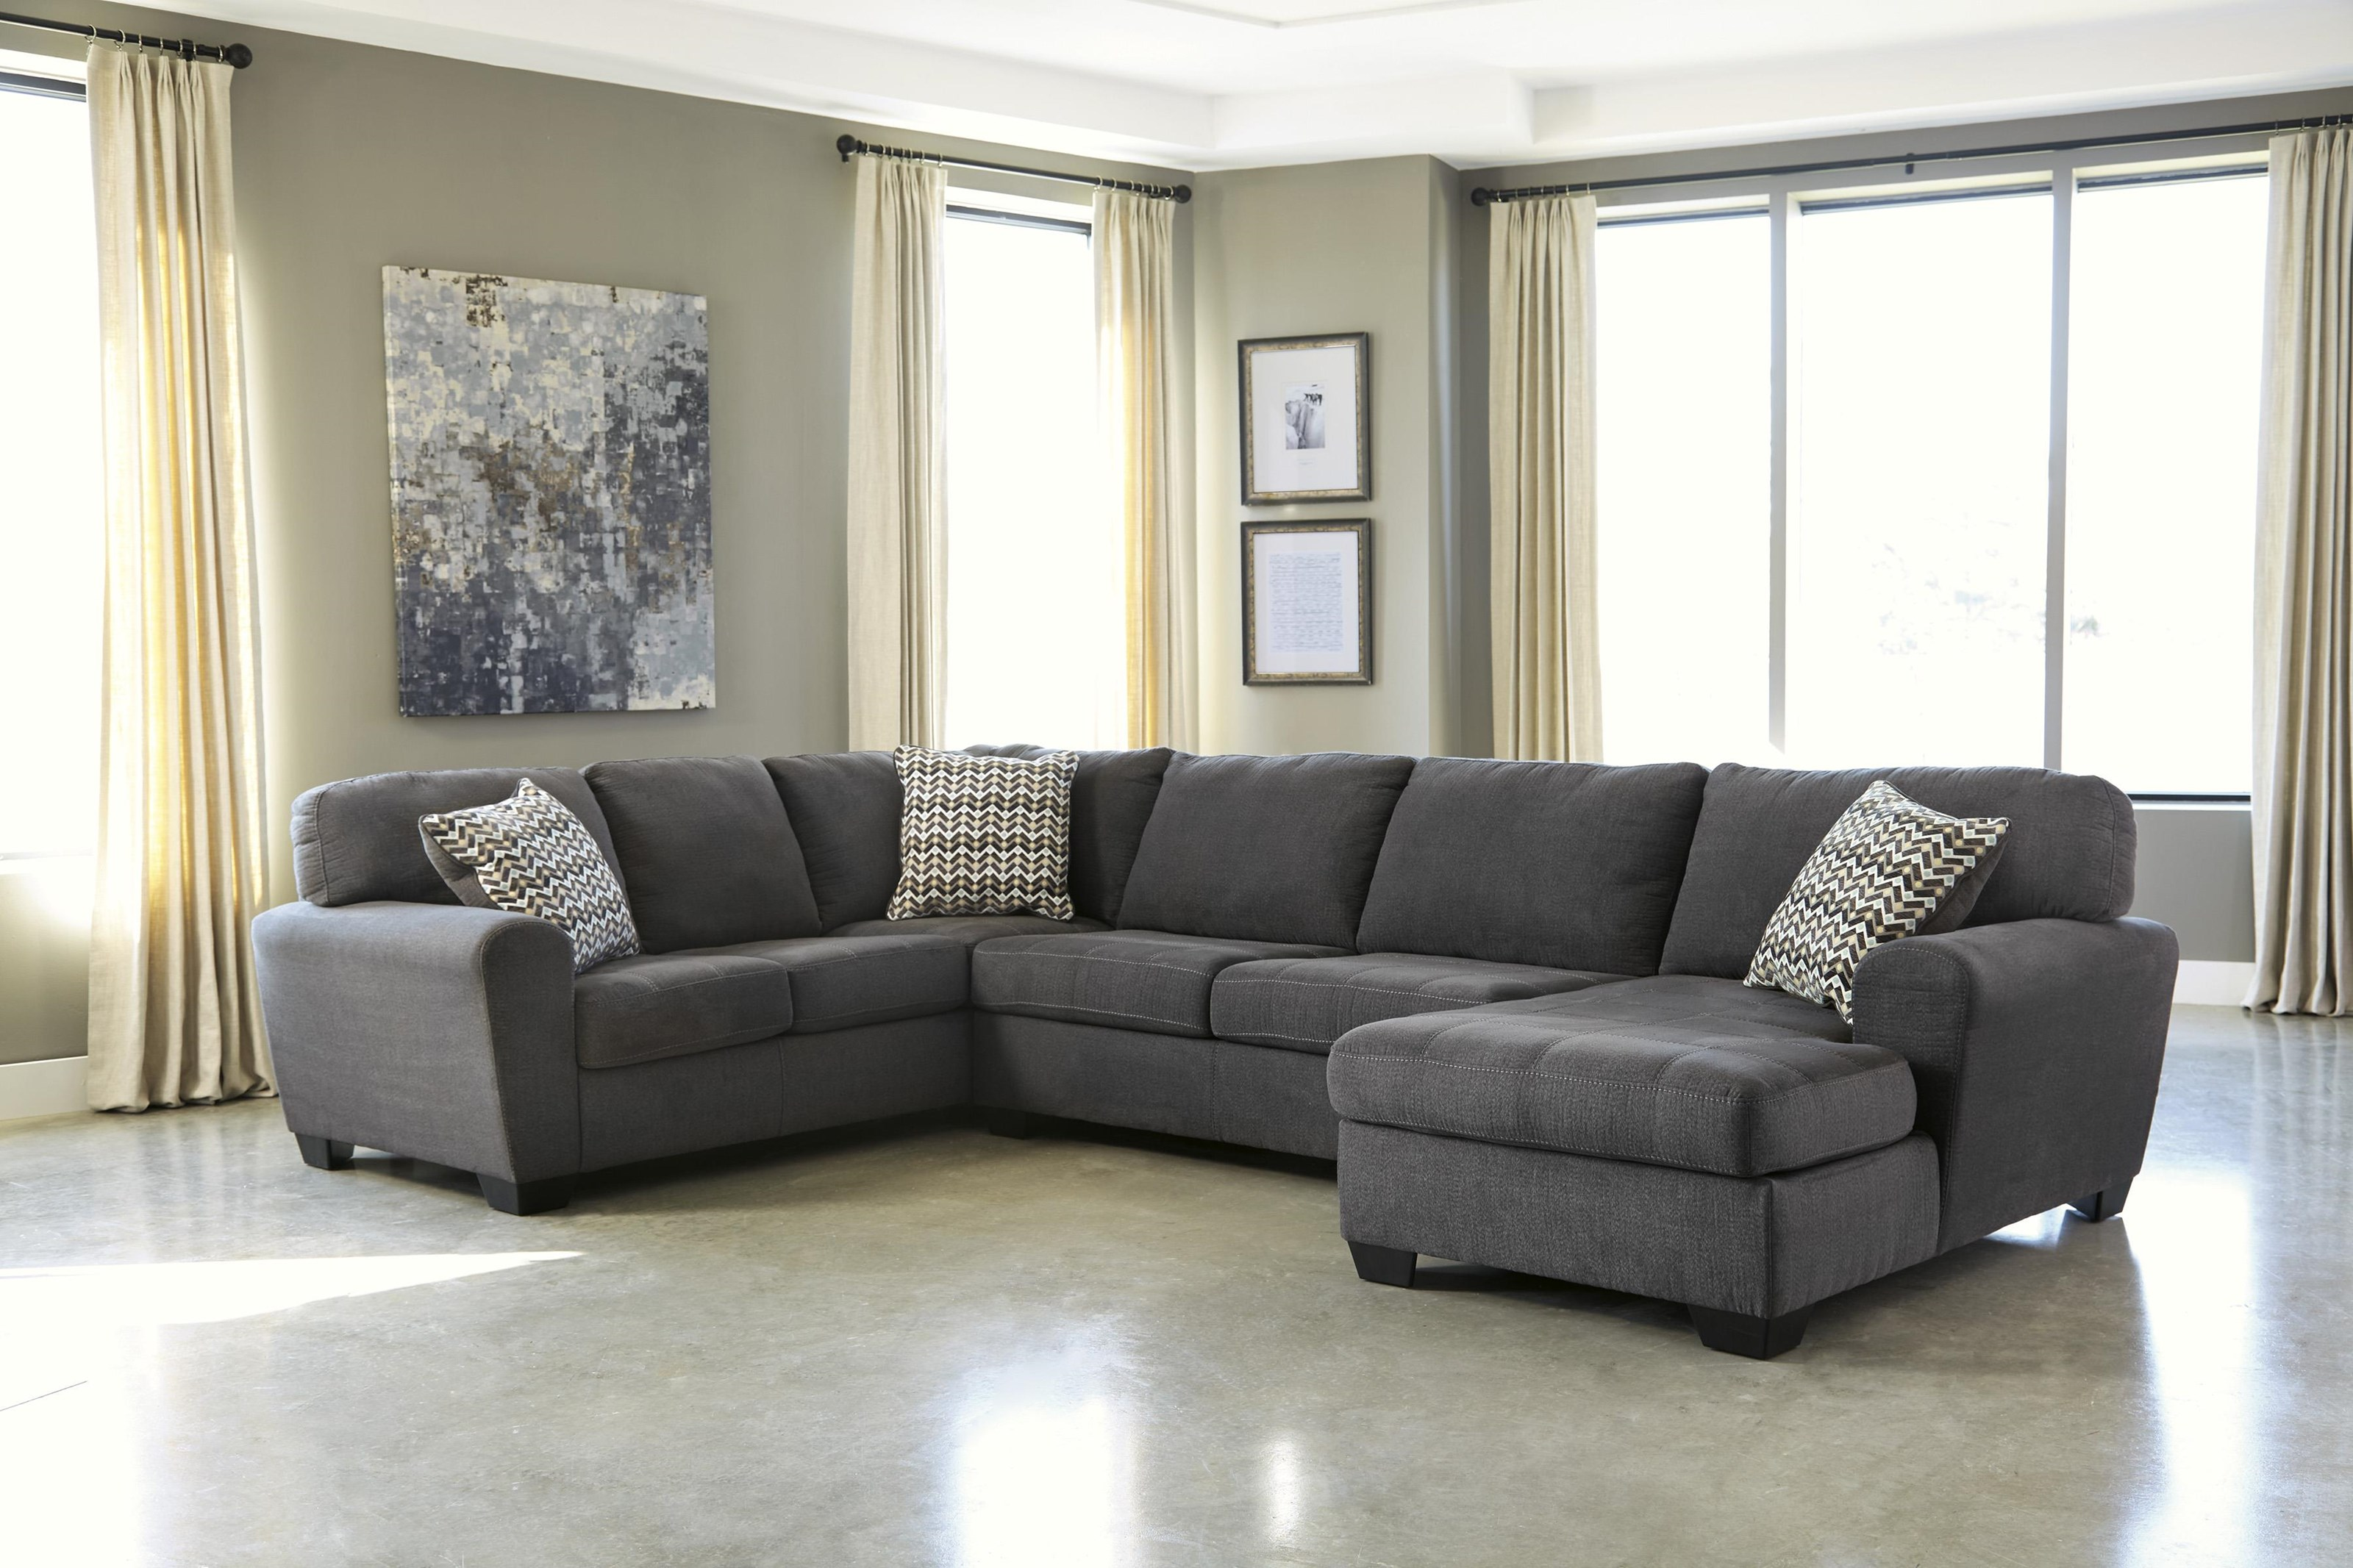 3 Piece Chaise Sectional ofa